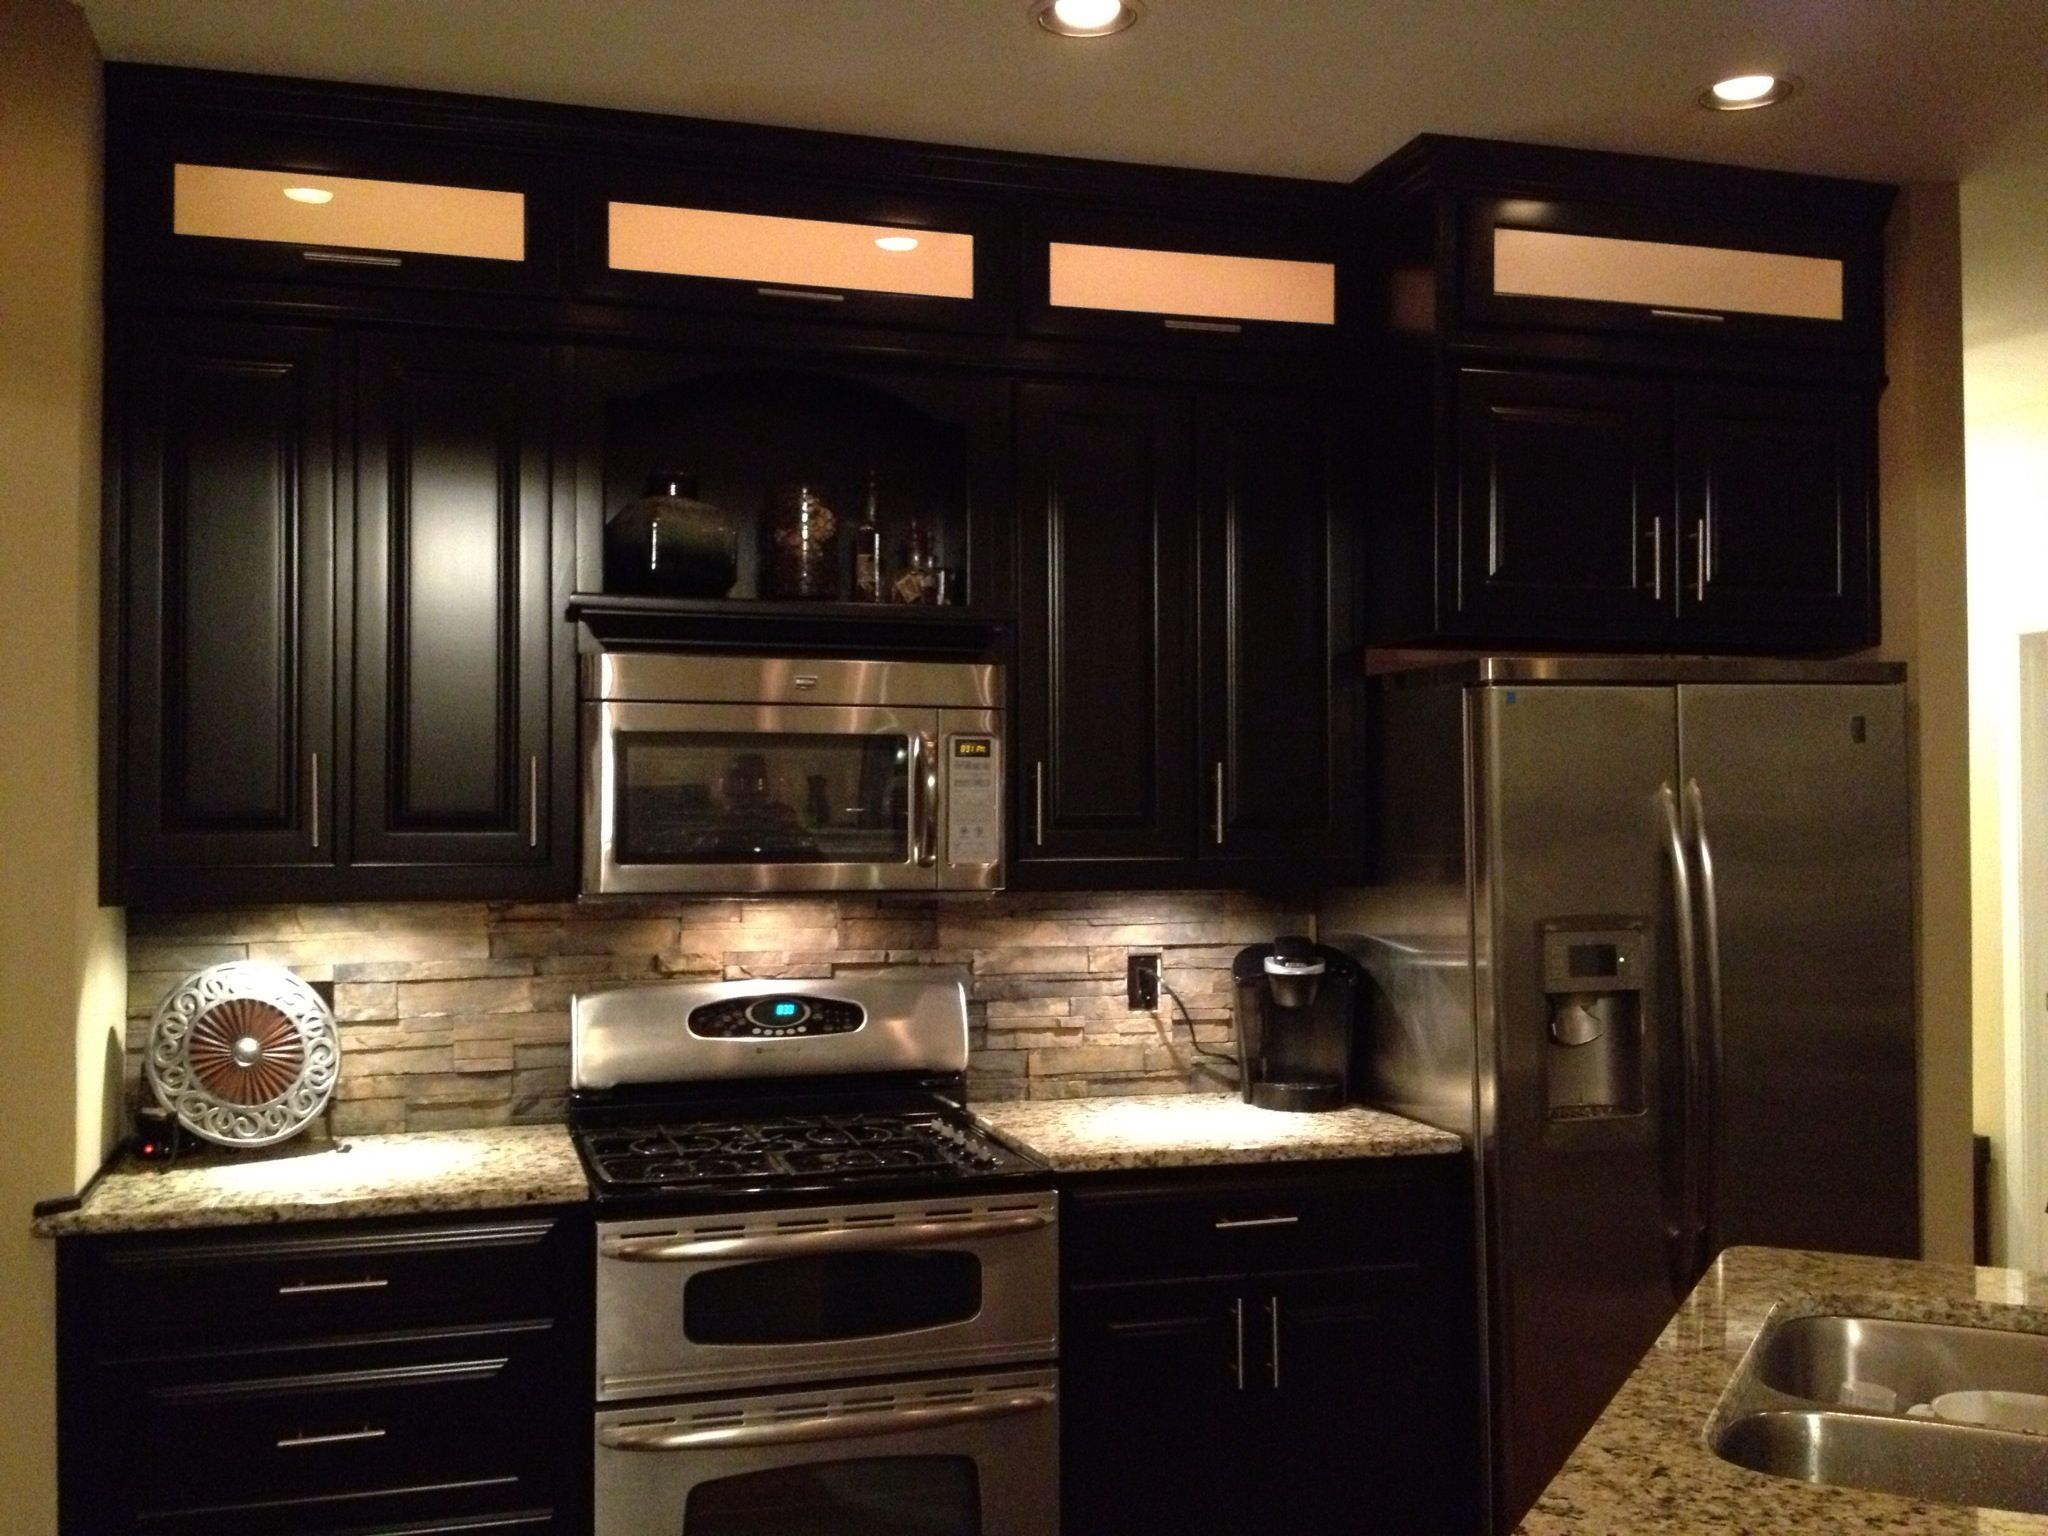 Espresso Cabinets Light Granite Stacked Rock Backsplash With In Cabinet And Under Cabinet Lighting Stone Backsplash Backsplash Brick Backsplash